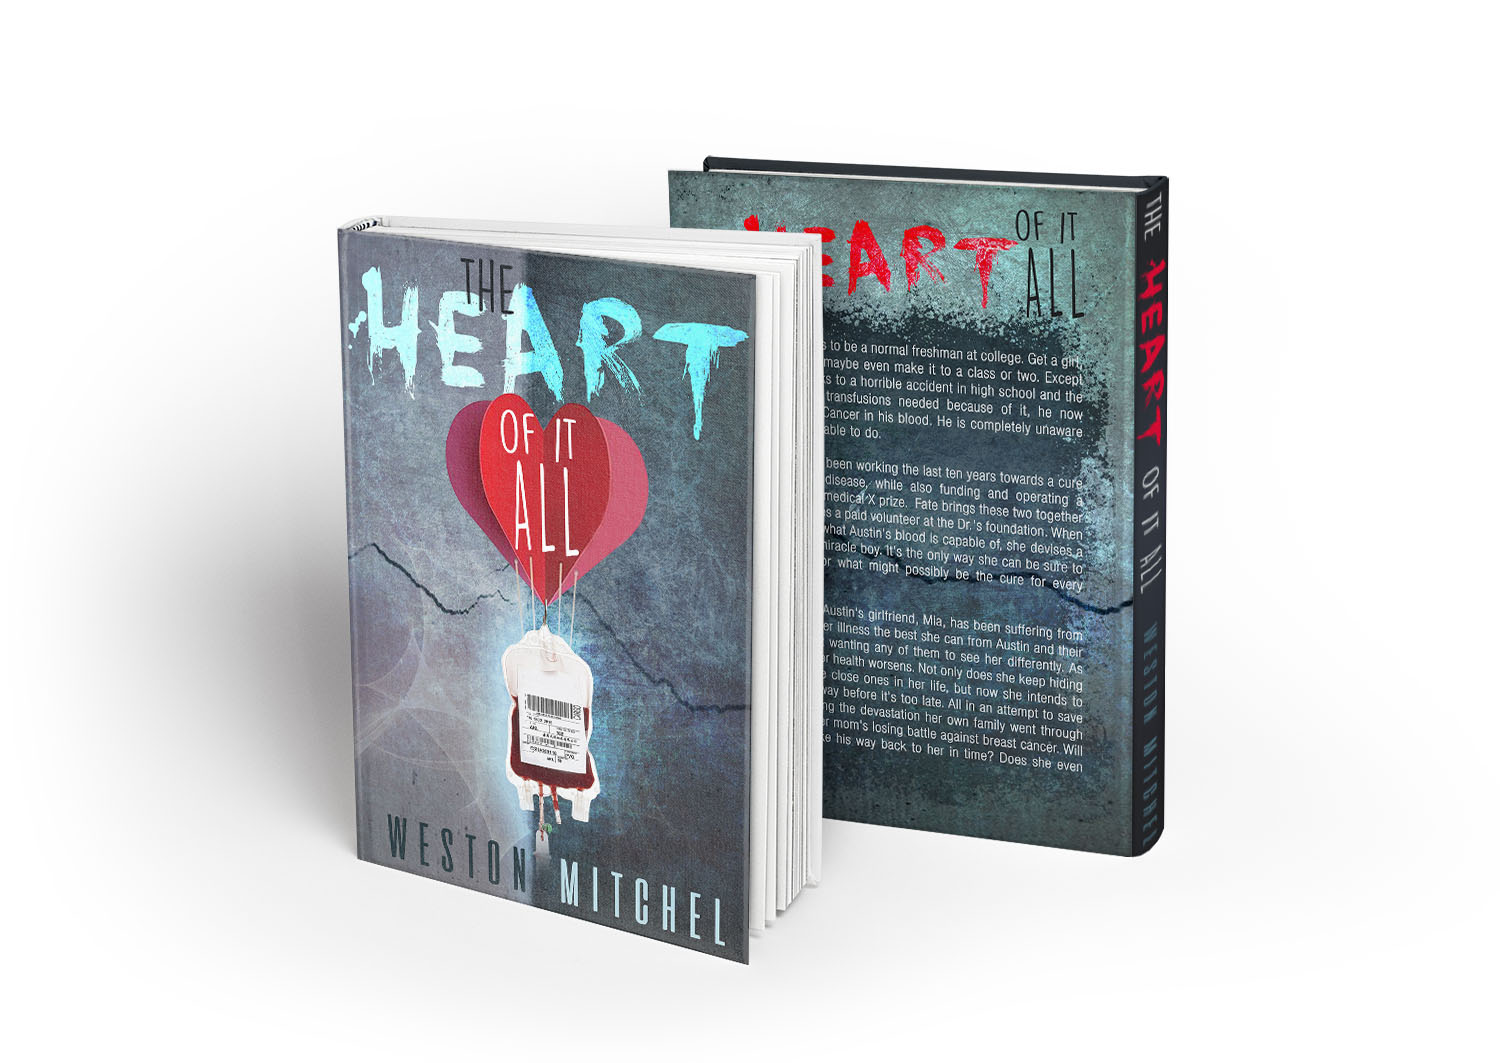 HeartOfItAllHardcover